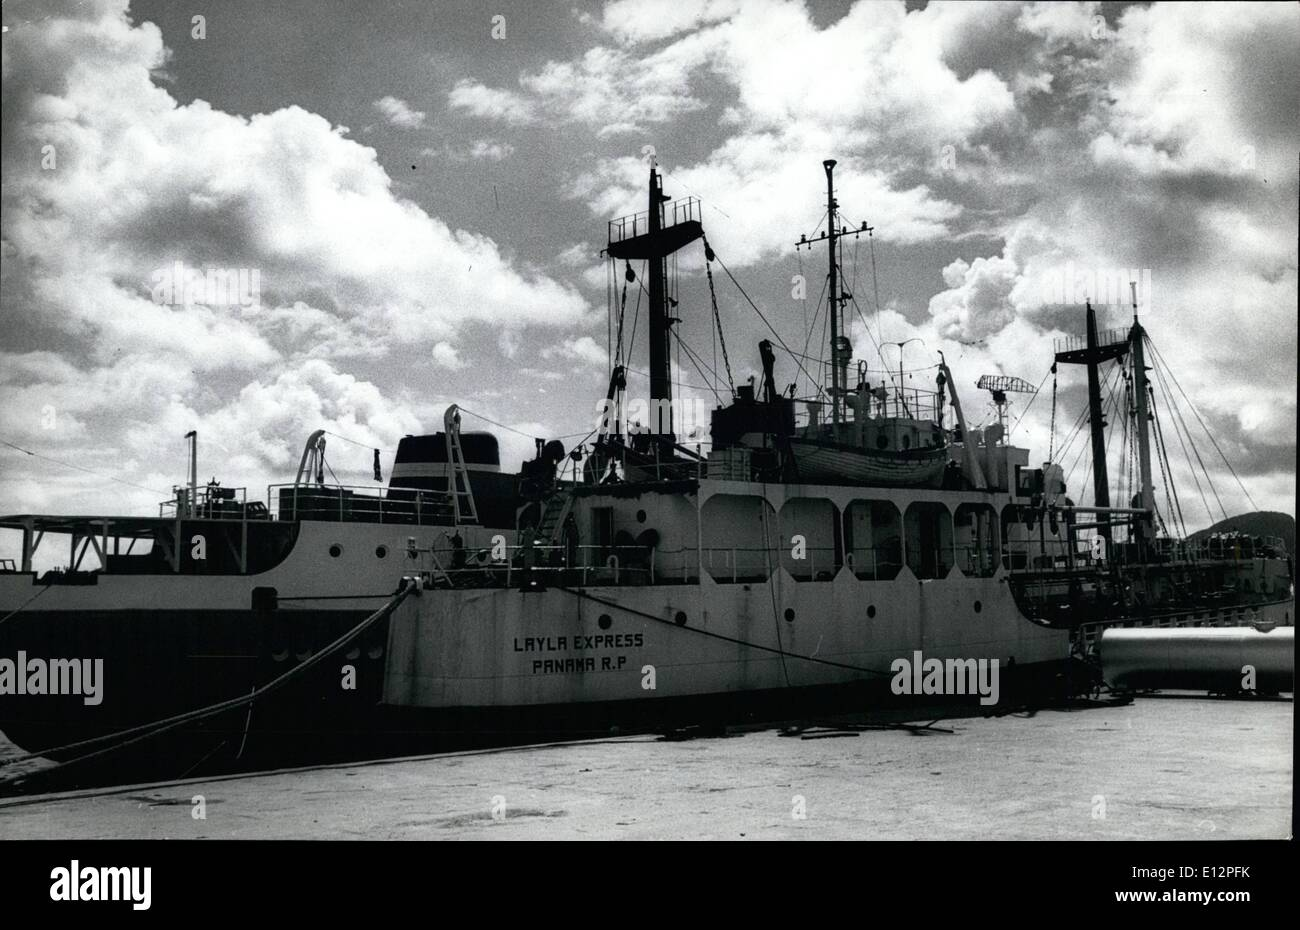 Feb. 24, 2012 - Panama is handed back Pirate ships captured in Cuba: The agreement by which restitution has been made to the Panamanian government of the pirate ships, ''Johnny Express'' and ''Layly Express'', captured in 1971 by the Cuban Revolutionary government was formally signed on December 19 in Cuba's Ministry of Foreign Relations. These ships were used by the U.S. CIA to perpetrate armed actions and to infiltrate agents into Cuban territory, without the knowledge of the Panamanian government, under whose flag they effected their operations - Stock Image